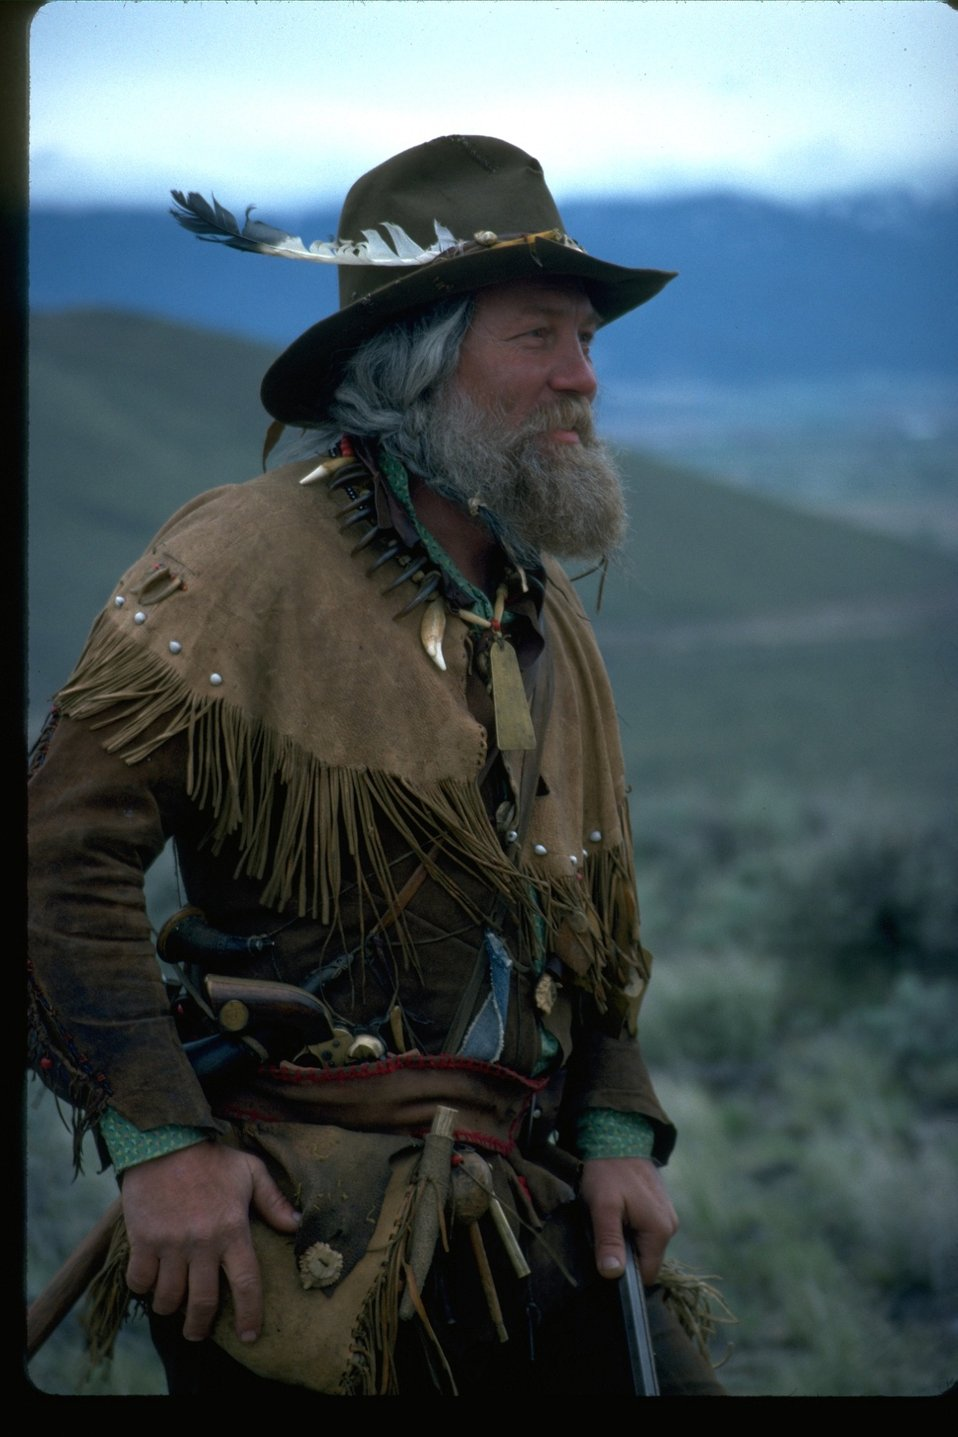 Mountain Man re-enactor.